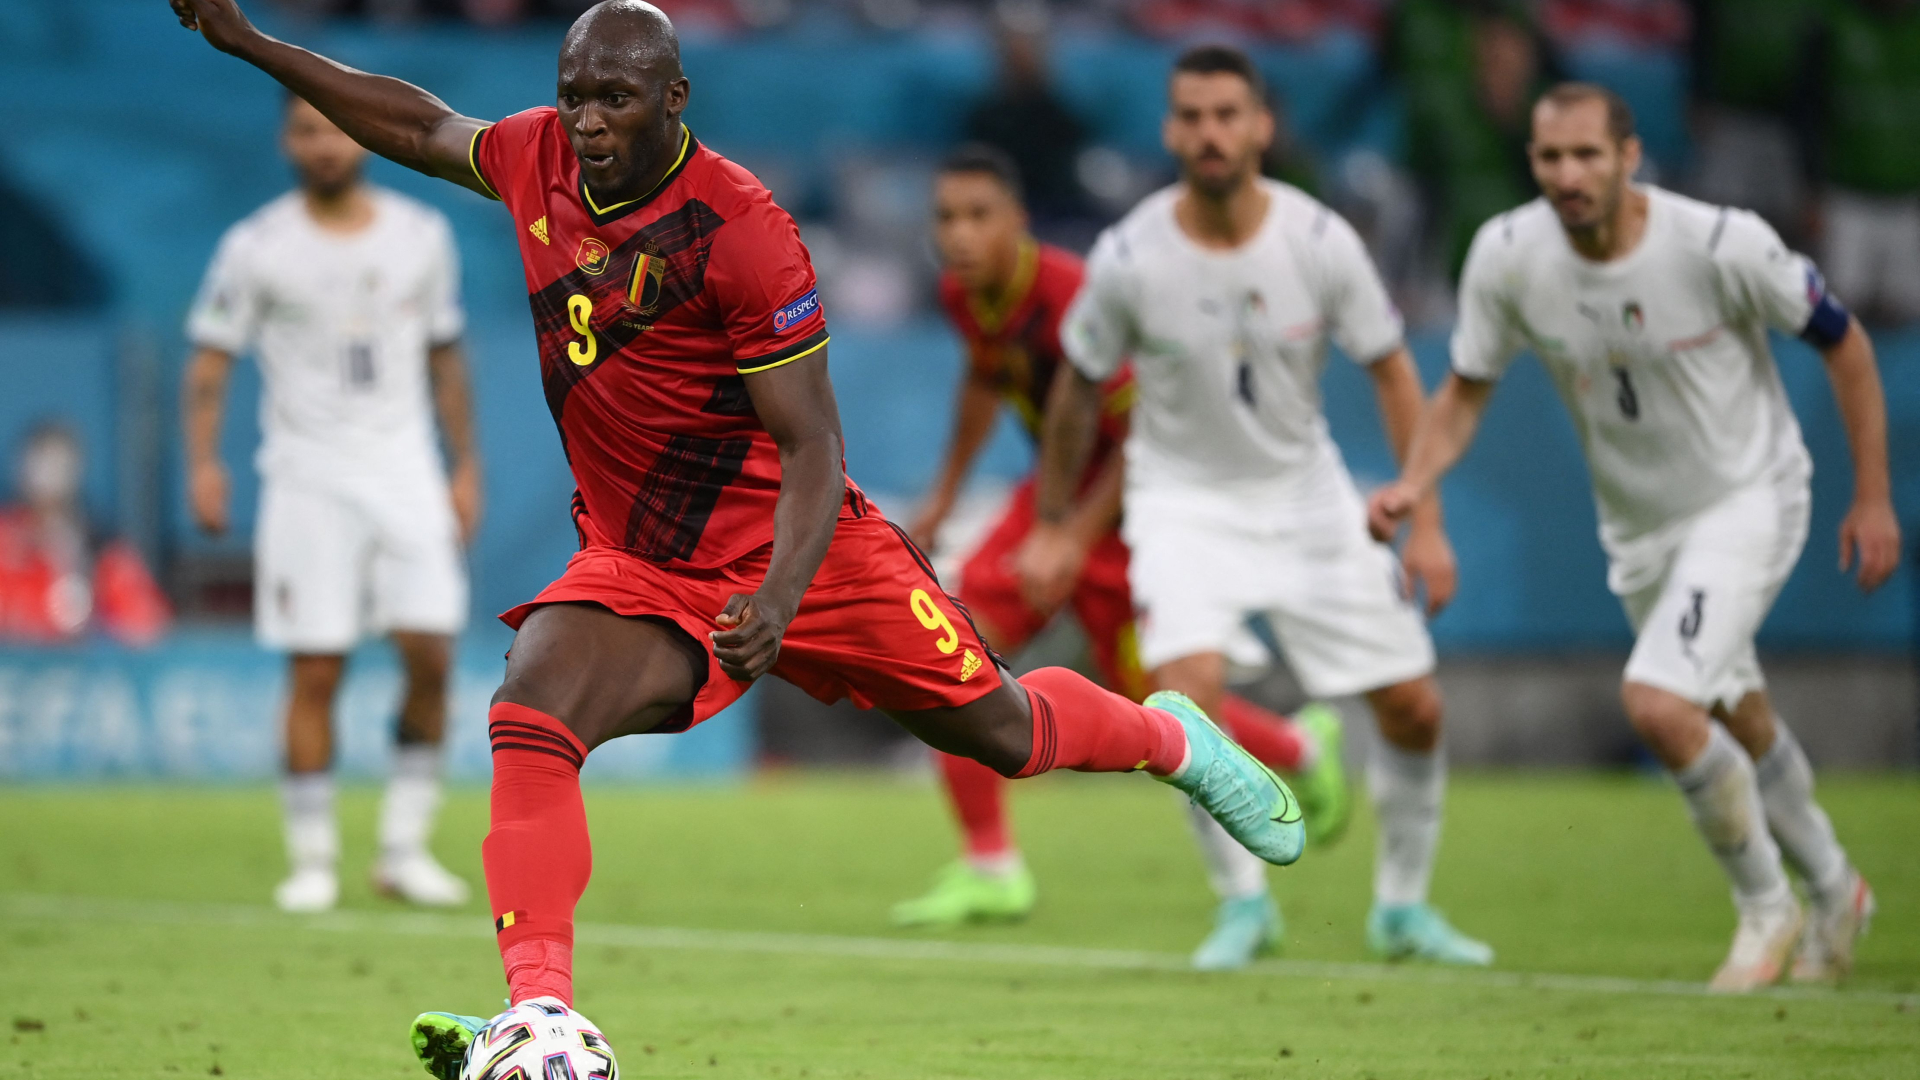 How to watch Belgium vs France in the semi-finals of the 2021 UEFA Nations League from India?